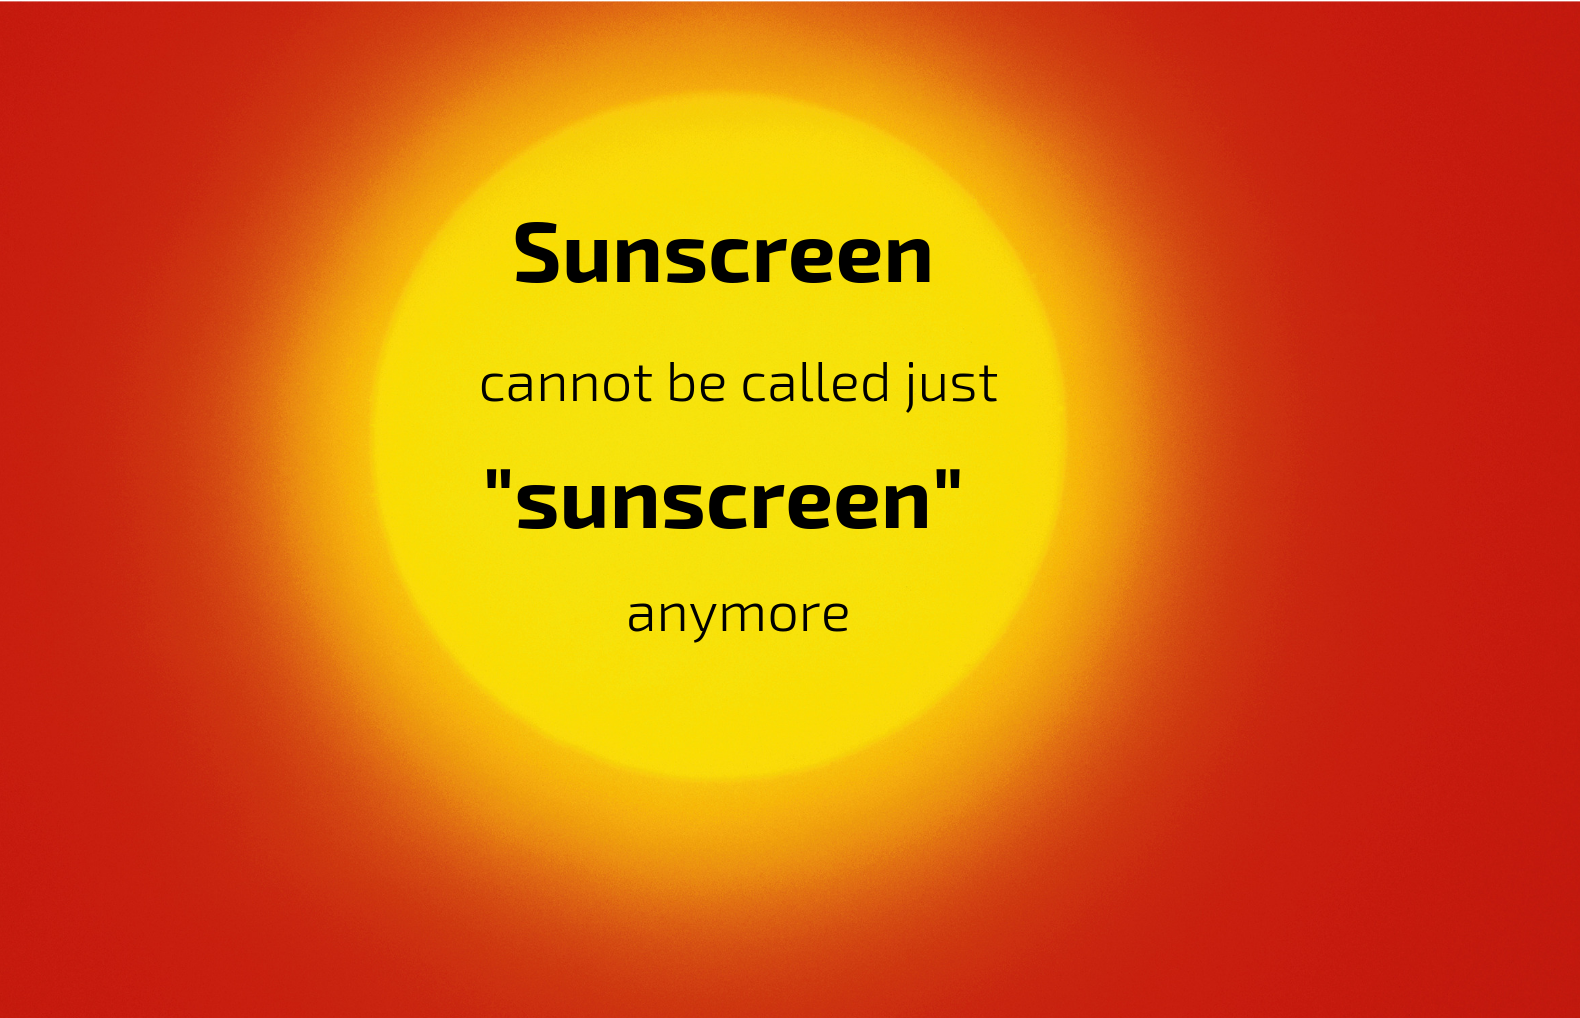 is-your-sunscreen-safe-sunscreen-cannot-be-called-just-sunscreen-anymore.png